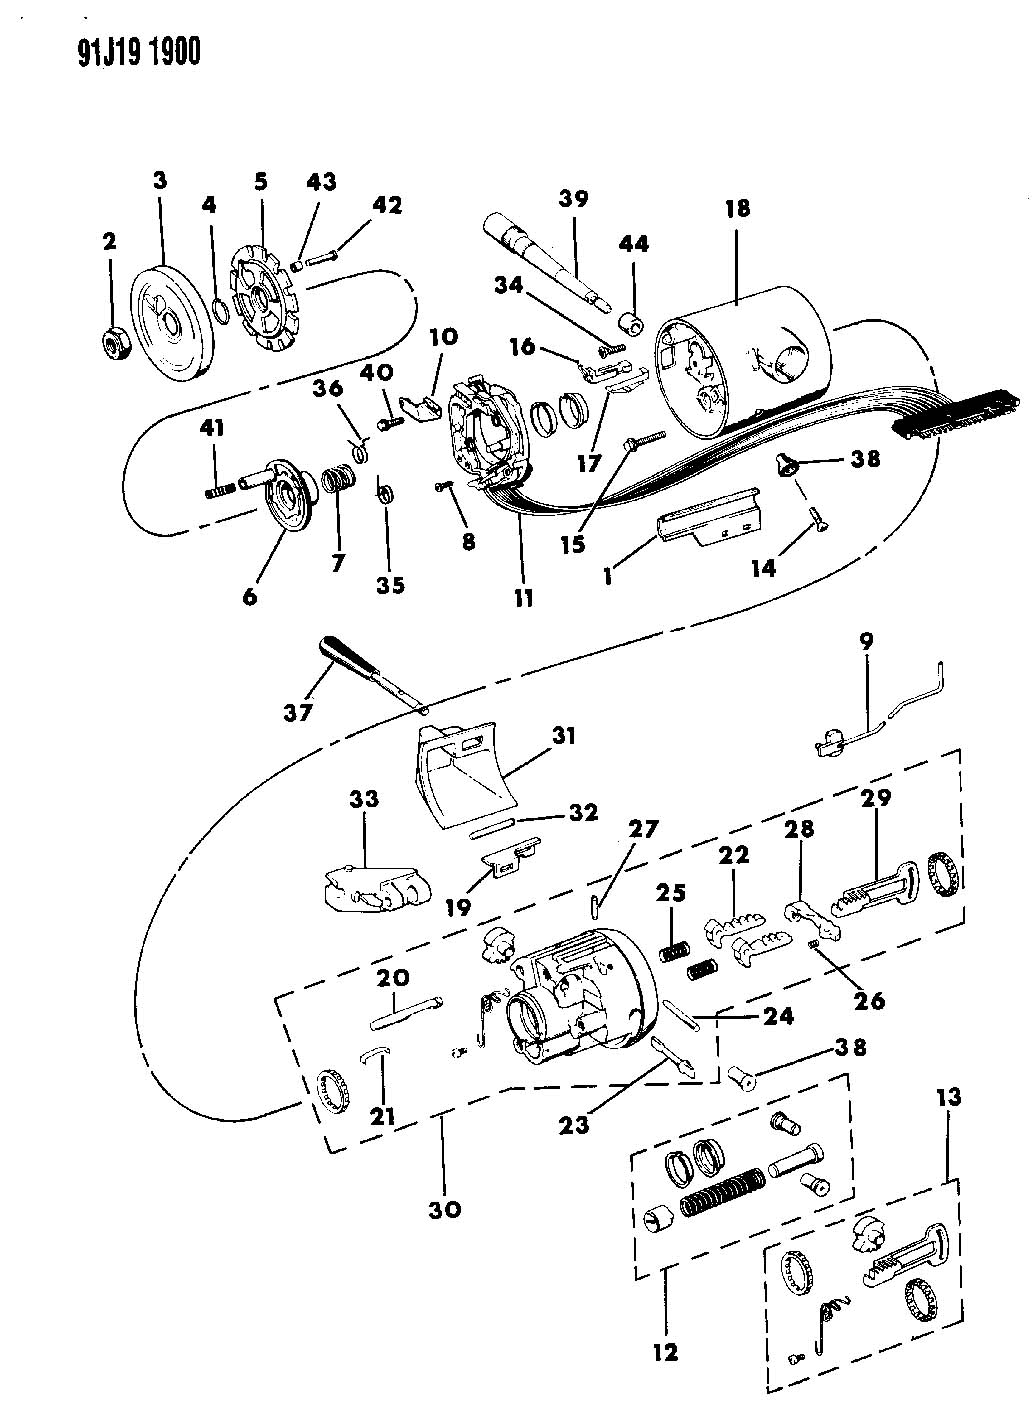 Jeep Cherokee Steering Column Wiring Real Diagram 1989 Tj Fuse Box Accessories Auto 1990